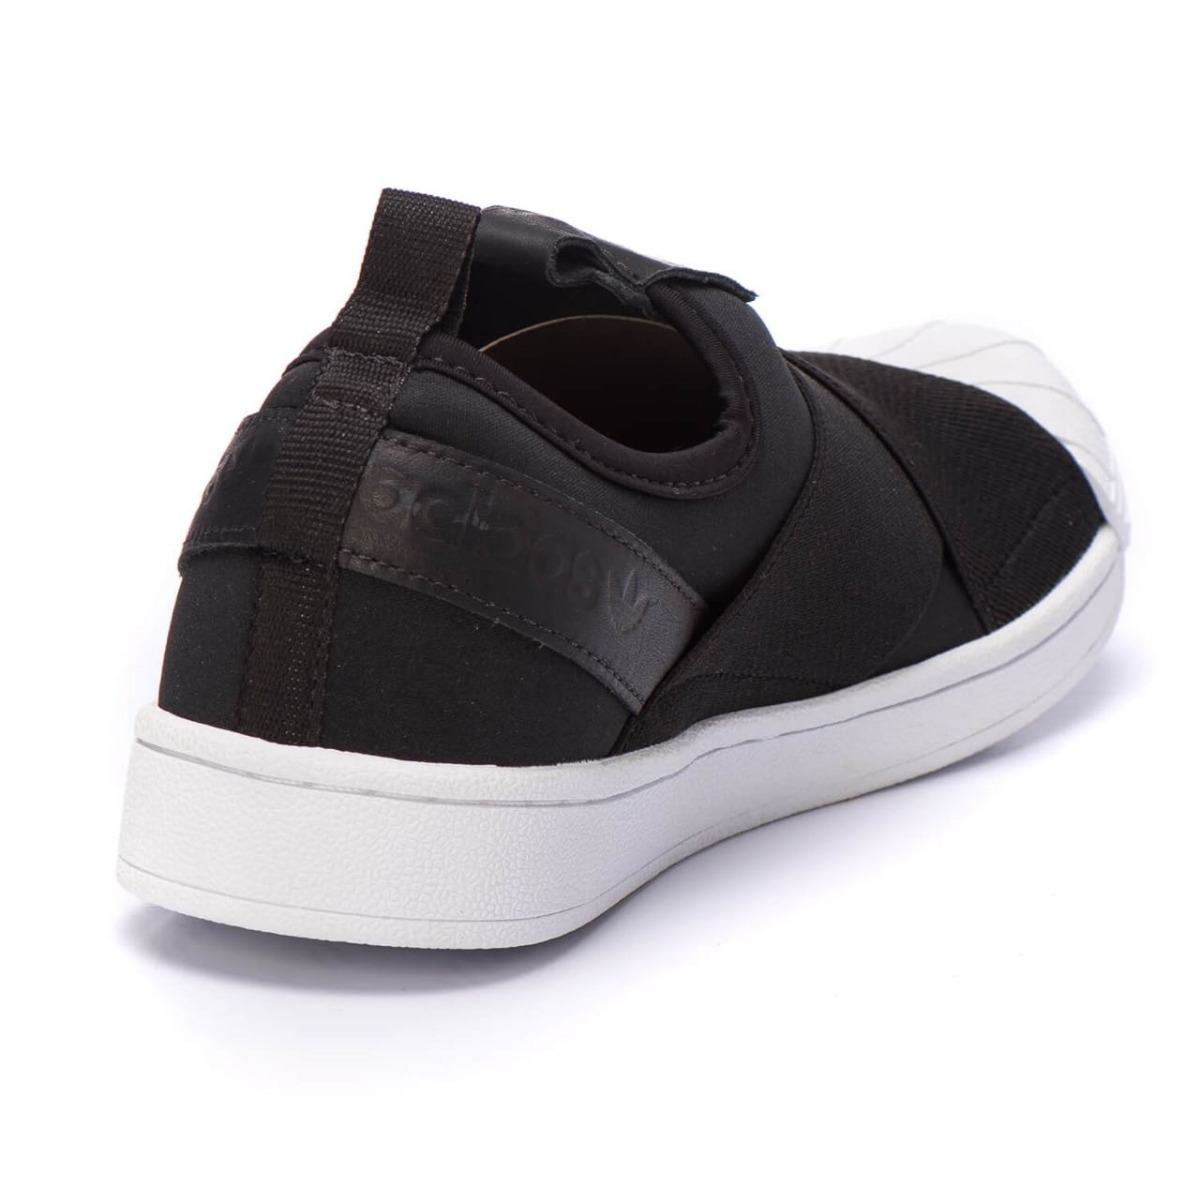 81417678f5 ... denmark adidas originals superstar slip on w preto. carregando zoom.  19f86 68dd7